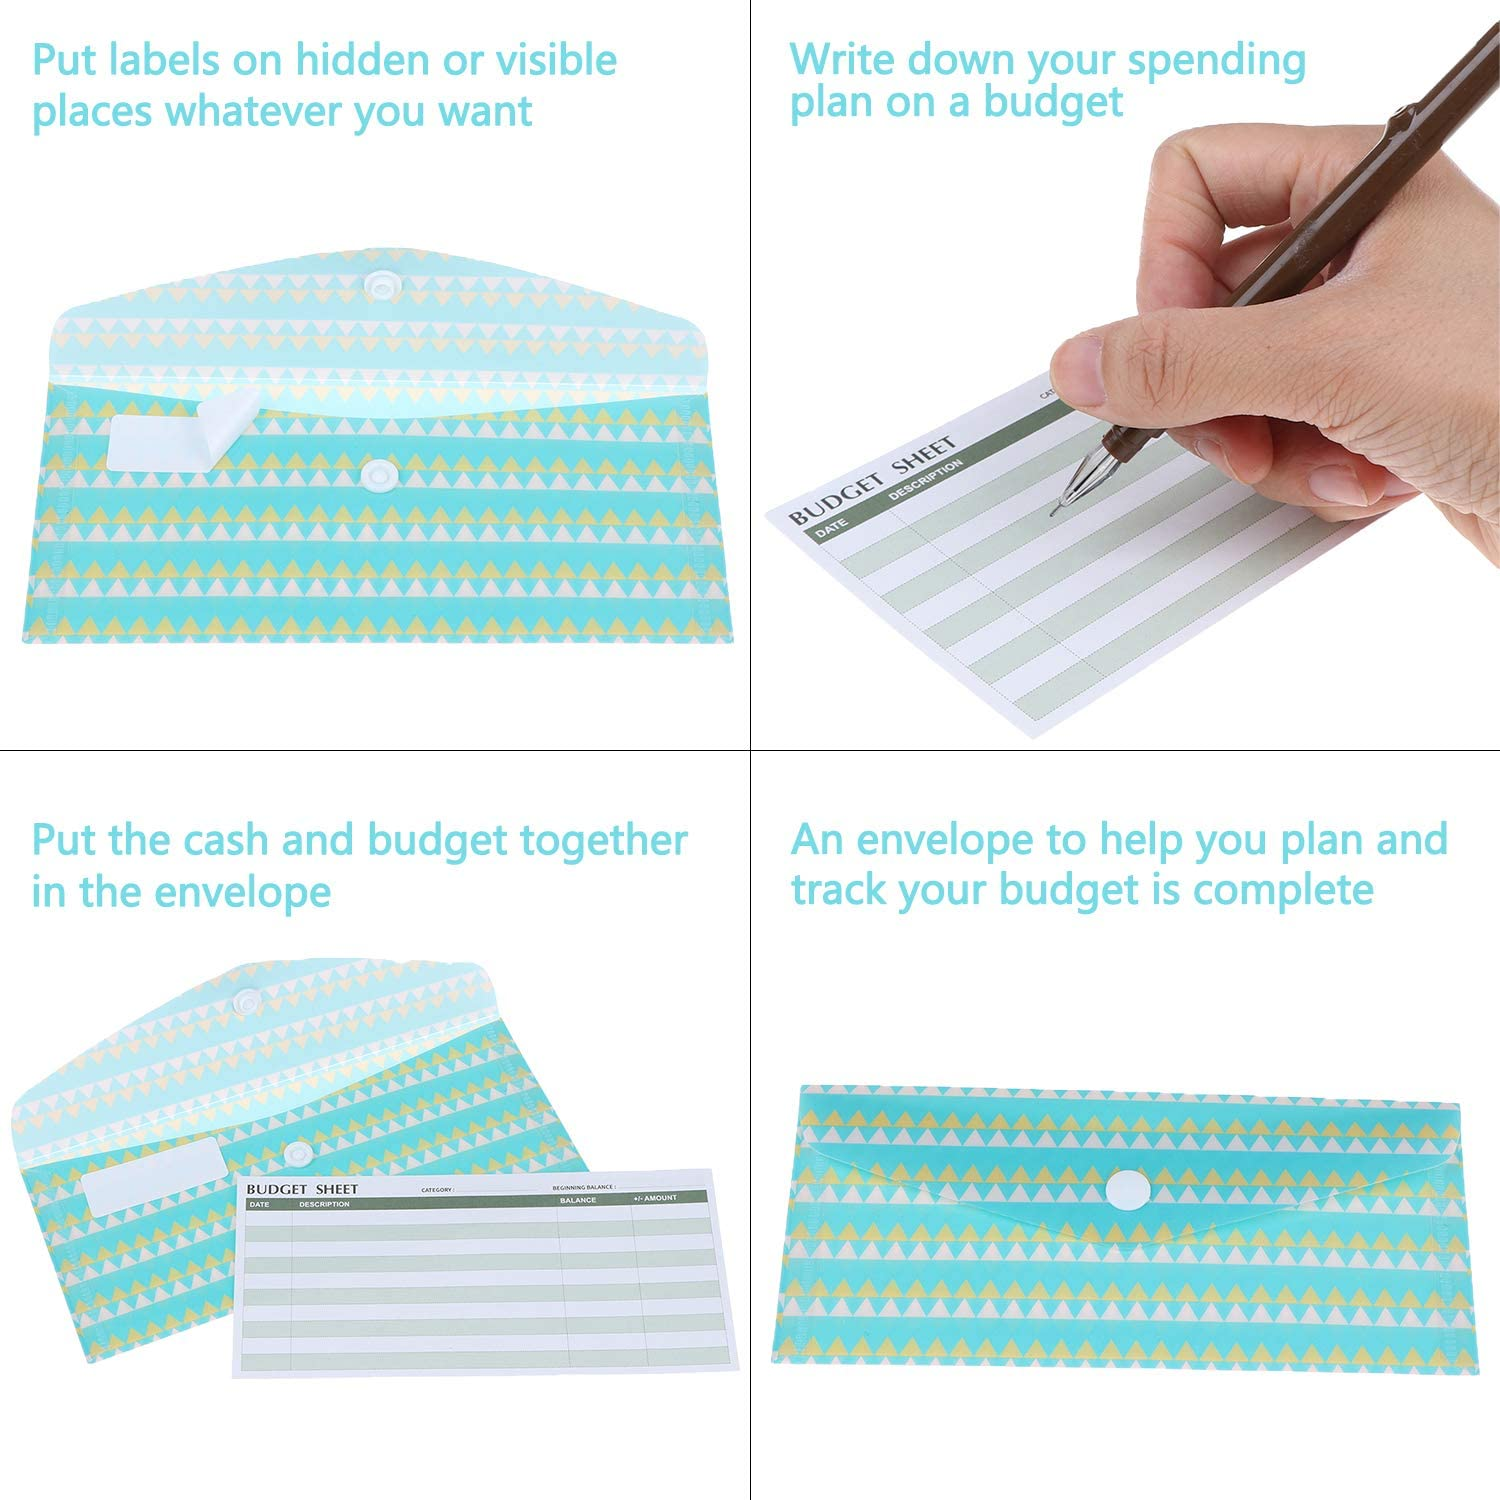 Yoption Cash Envelope System 15 Pack Waterproof Reusable Plastic Budget Envelopes 15 Pcs Expense Tracking Budget Sheets and 24 Bill Planner Stickers